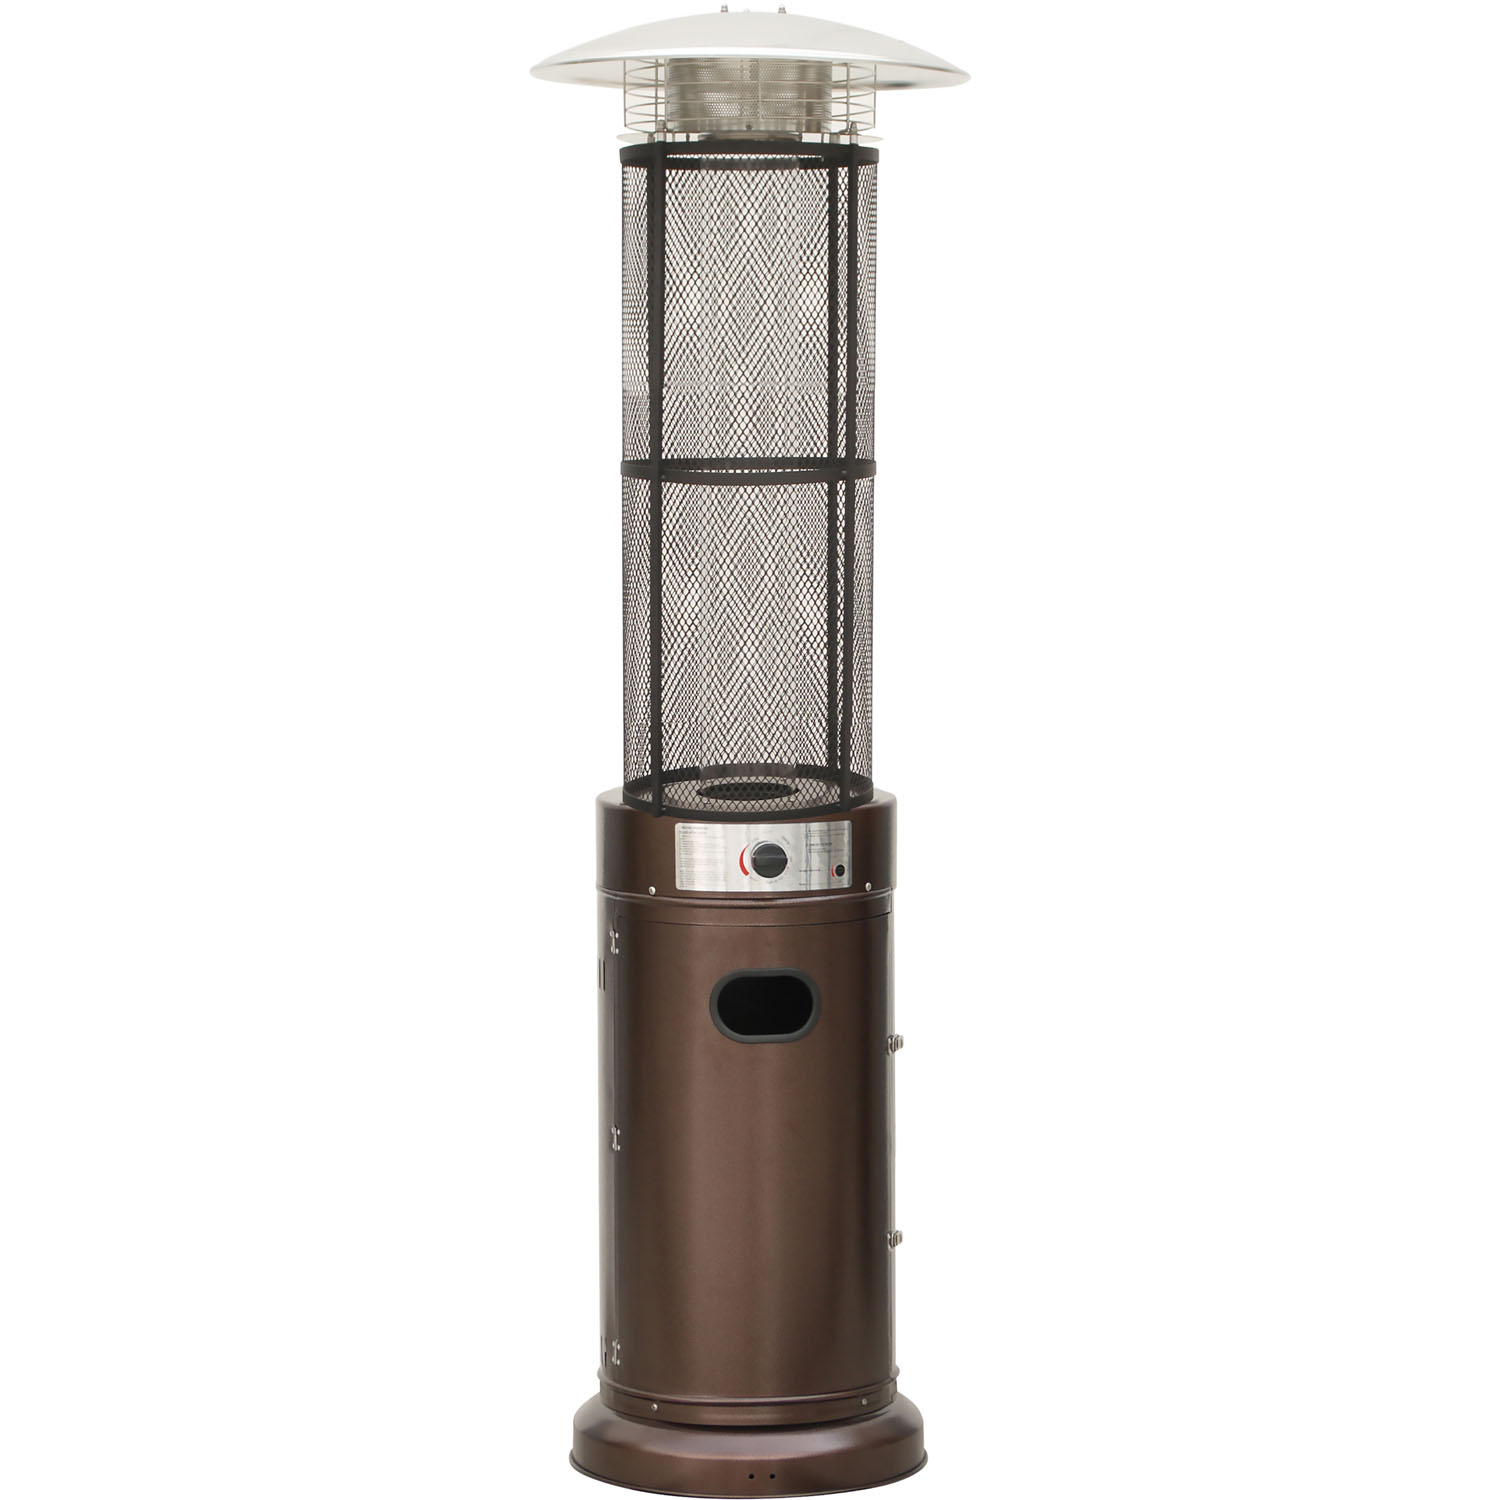 Hanover 6-Ft. 34,000 BTU Cylinder Patio Heater with Glass Flame Display in Bronze